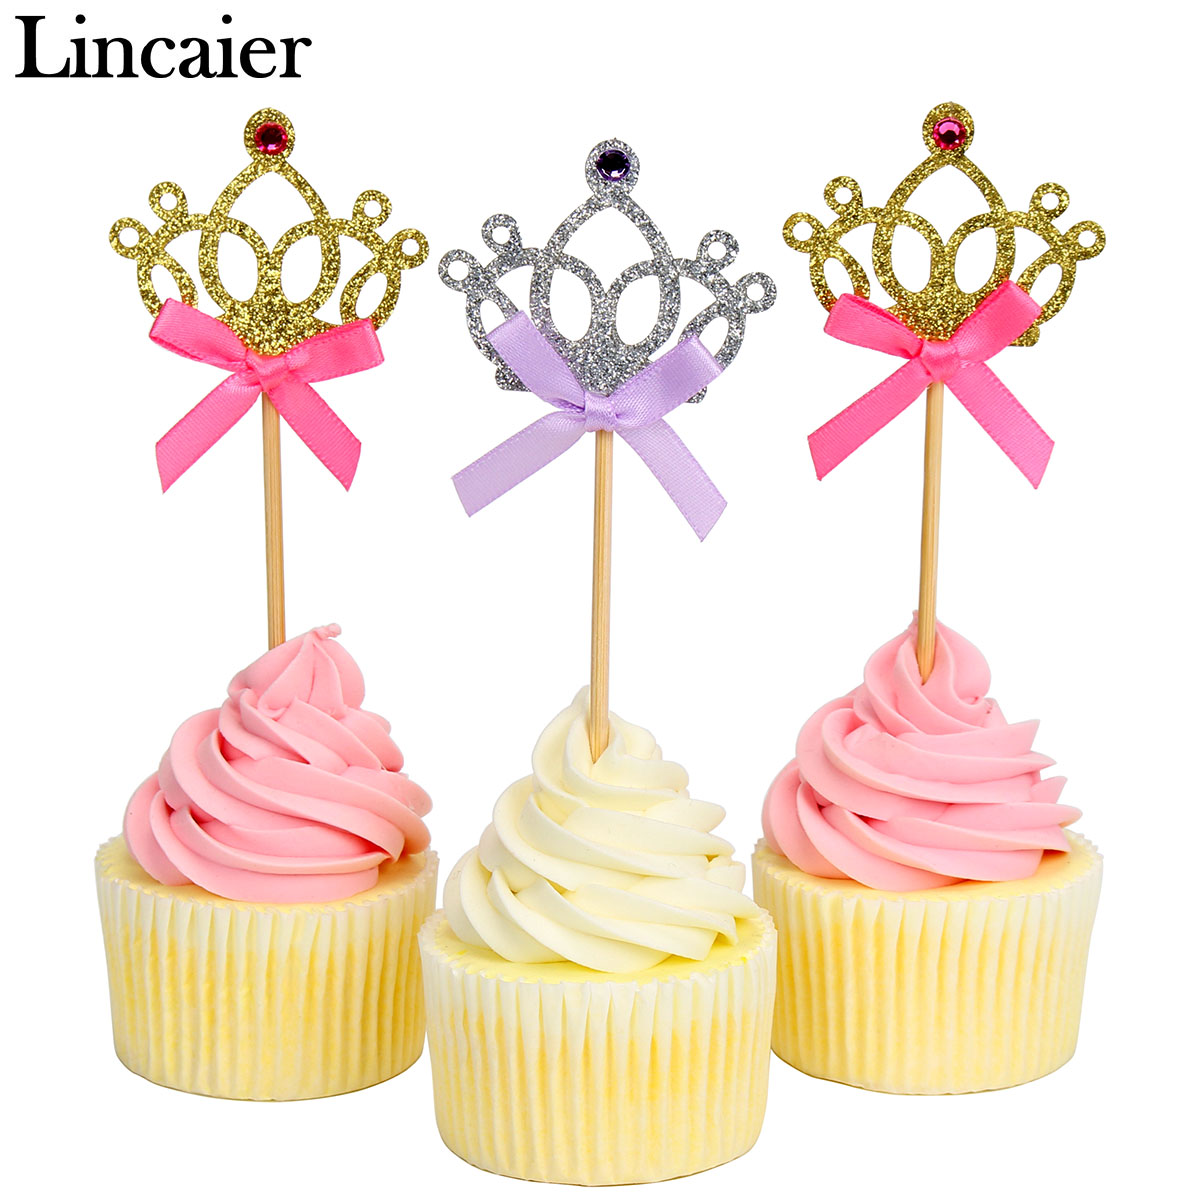 10pcs Princess Crown Cupcake Toppers Girl 1st Birthday Party